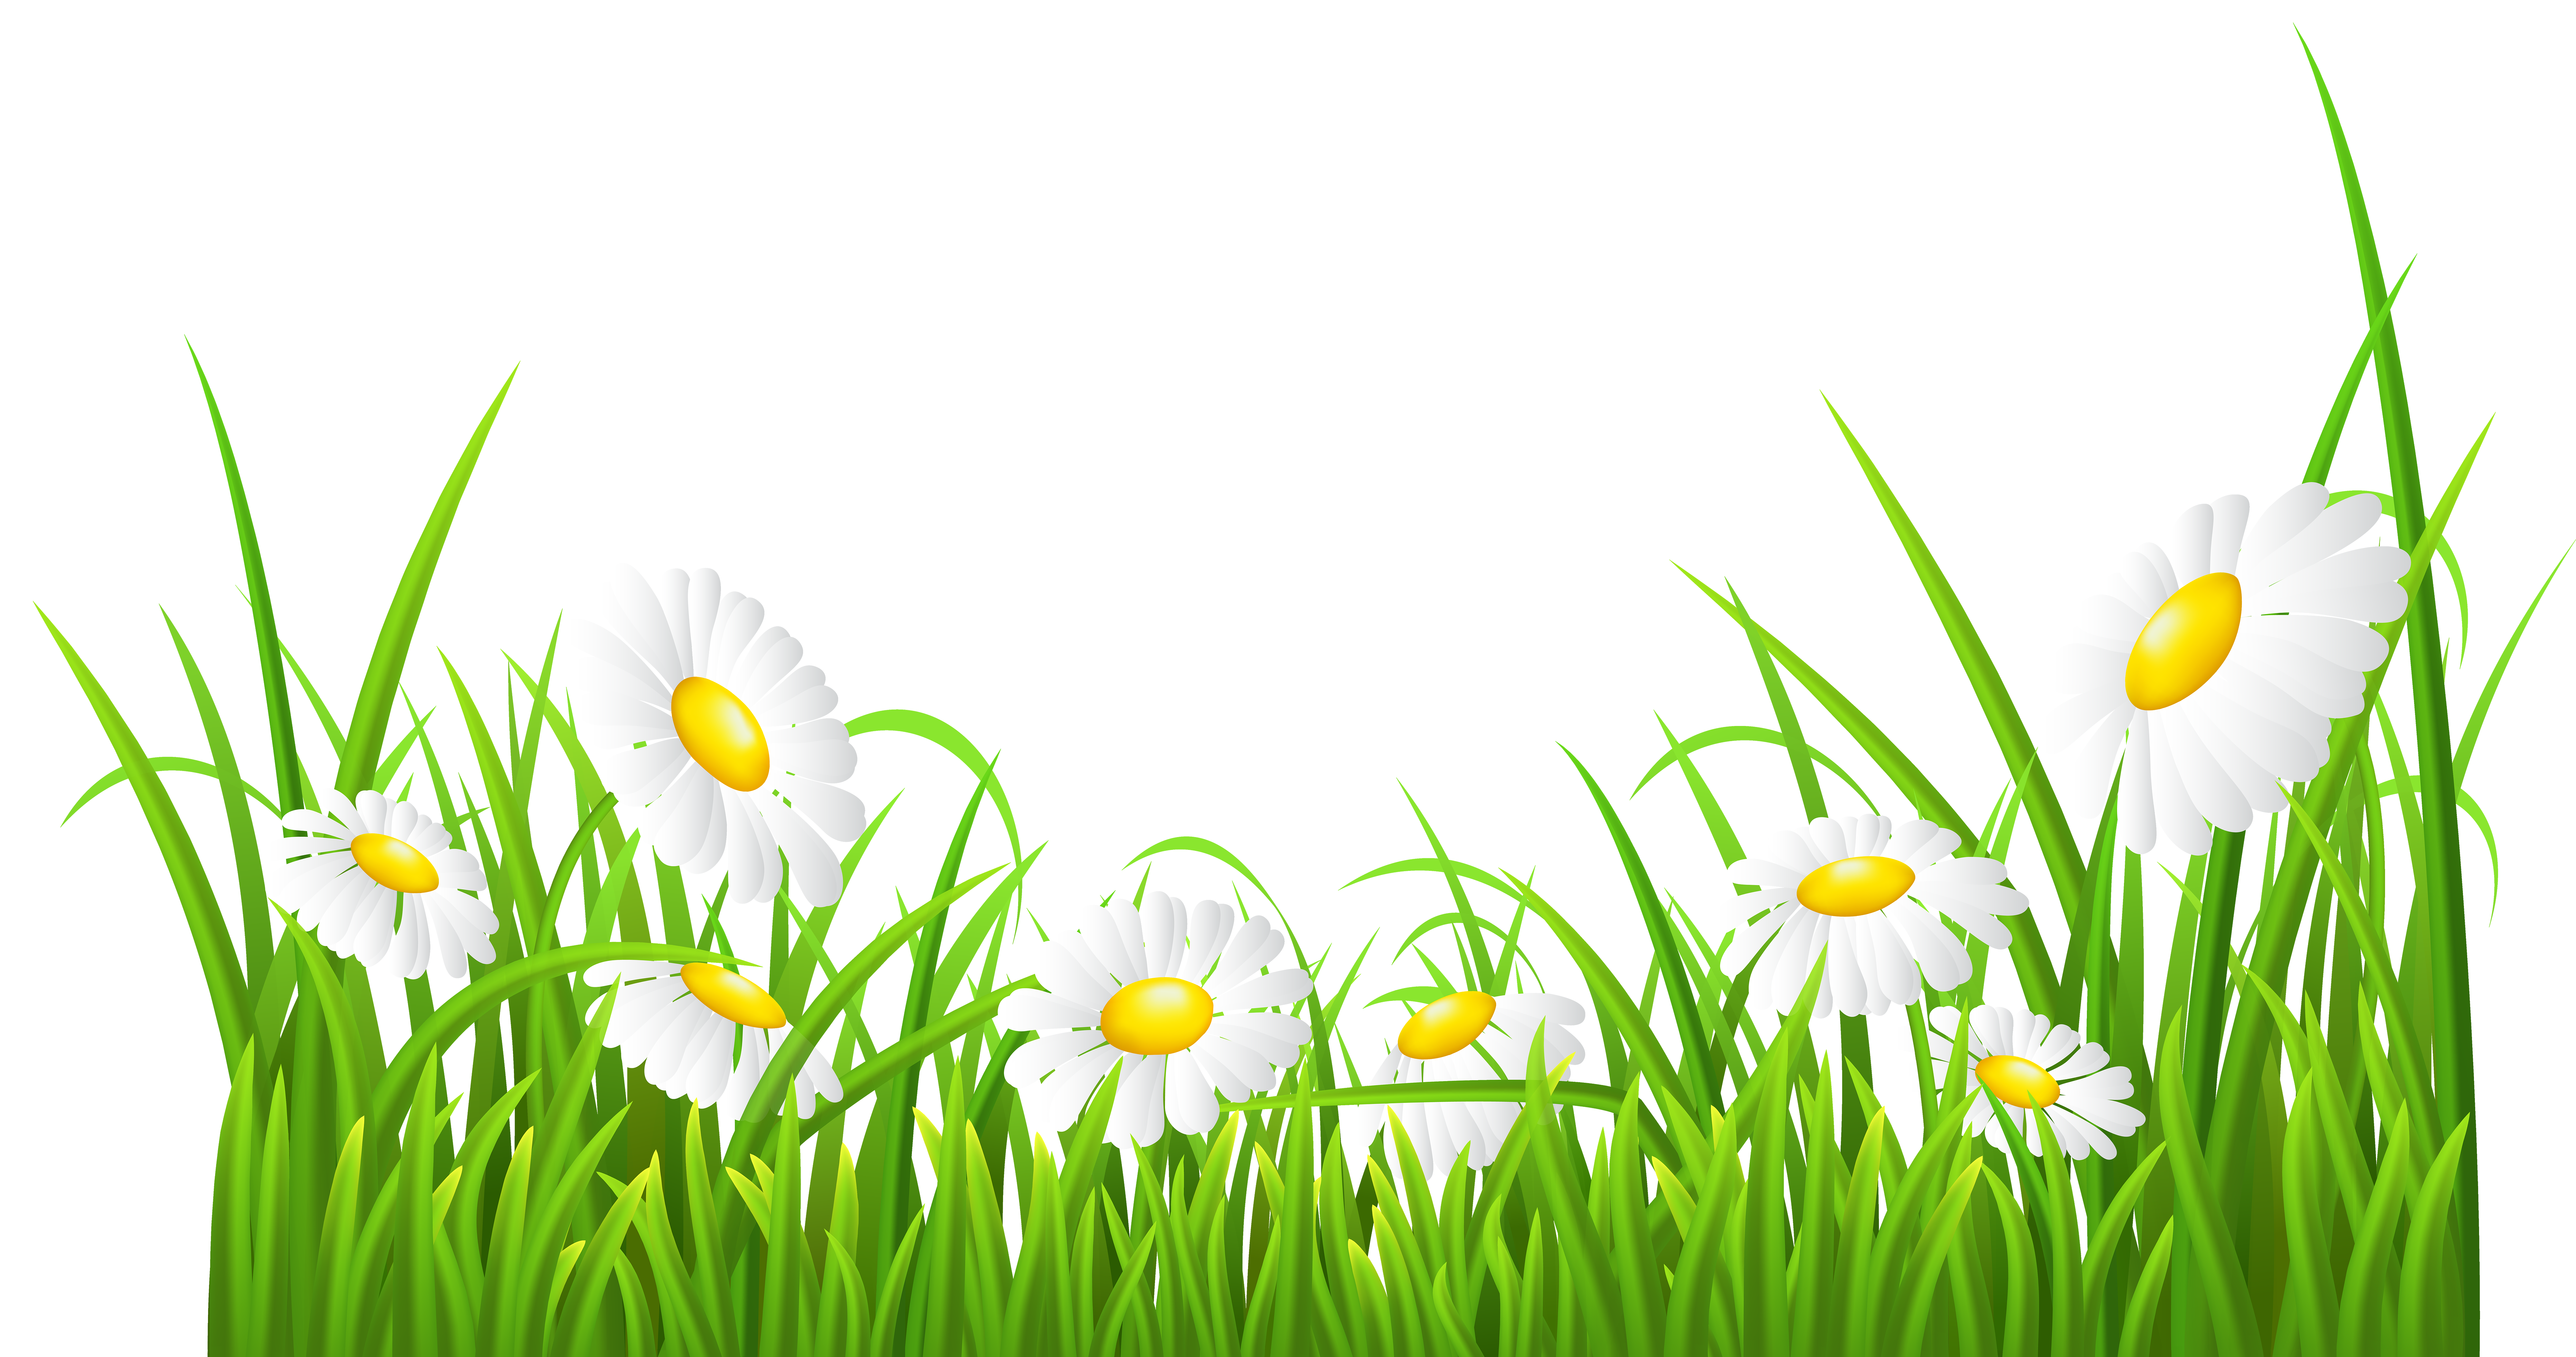 Flower and grass clipart clip art library White Daisies and Grass Transparent PNG Clip Art Image | Backgroup ... clip art library